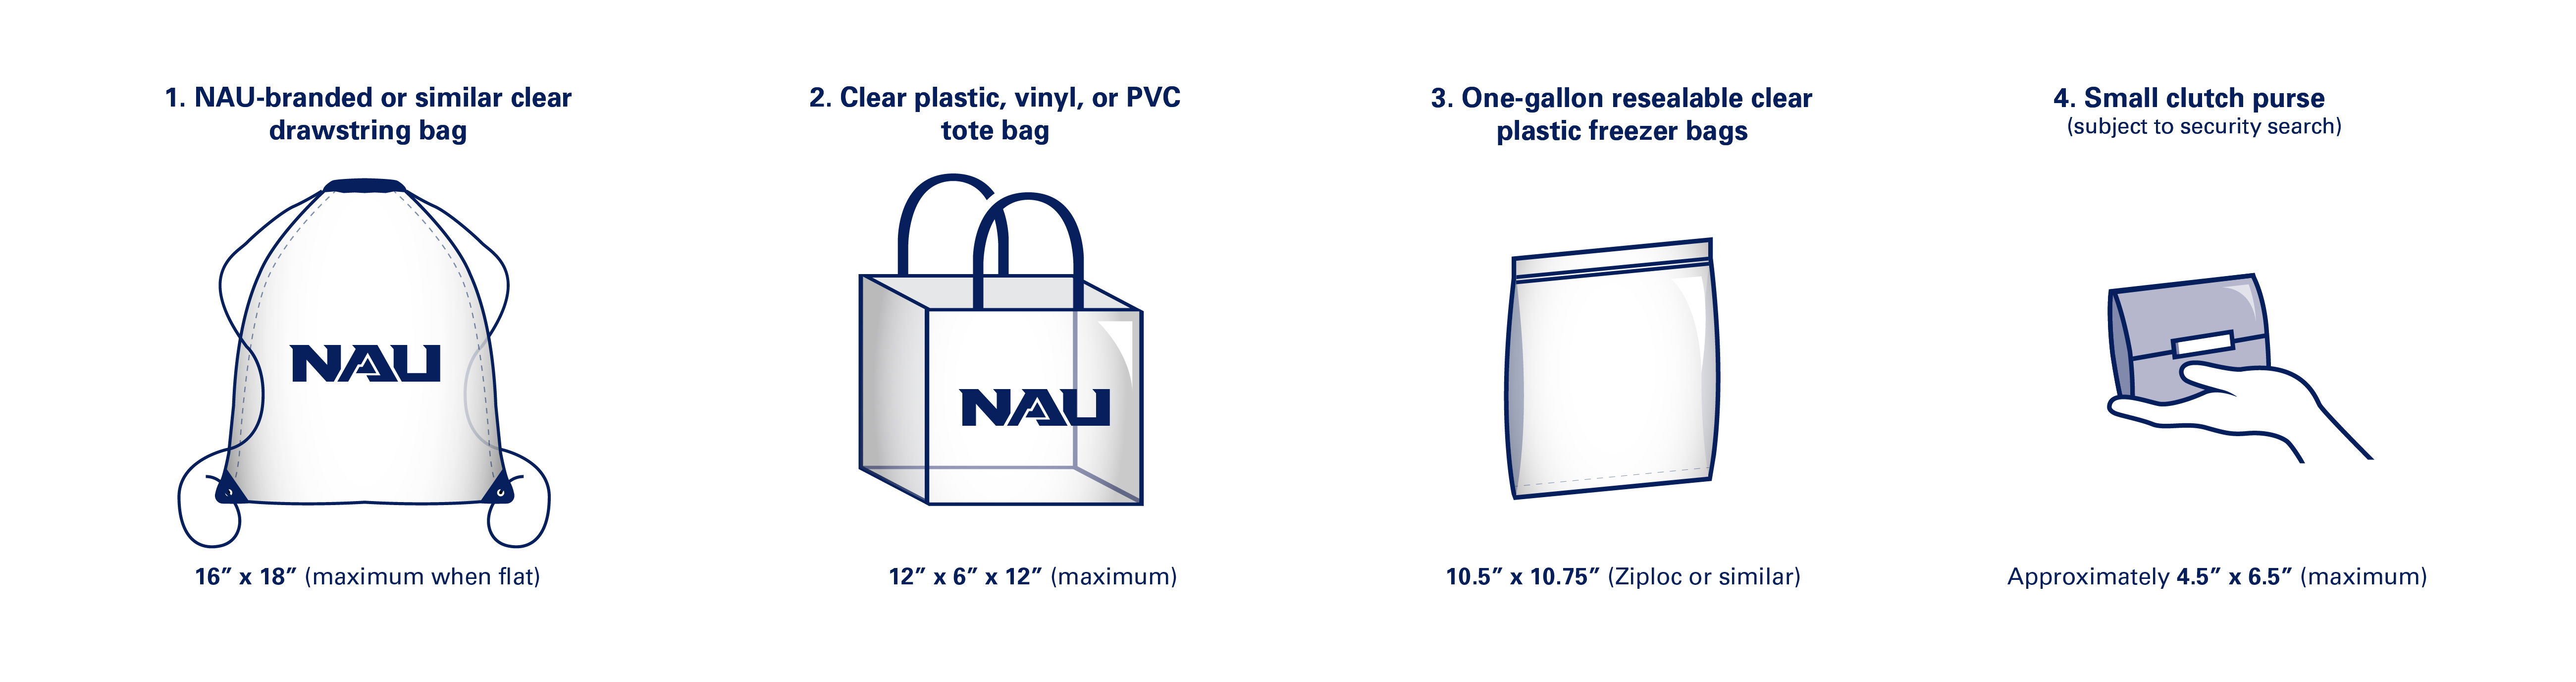 "1. NAU-branded or similar clear drawstring bags no larger than 16"" x 18"" when flat 2. Clear plastic, vinyl or PVC tote bags that do not exceed 12"" x 6"" x 12"" in size 3. One-gallon resealable clear plastic freezer bags 10.5"" x 10.75"" in size (Ziploc or similar) 4. Small clutch purses no larger than approximately 4.5"" x 6.5"" after being searched"